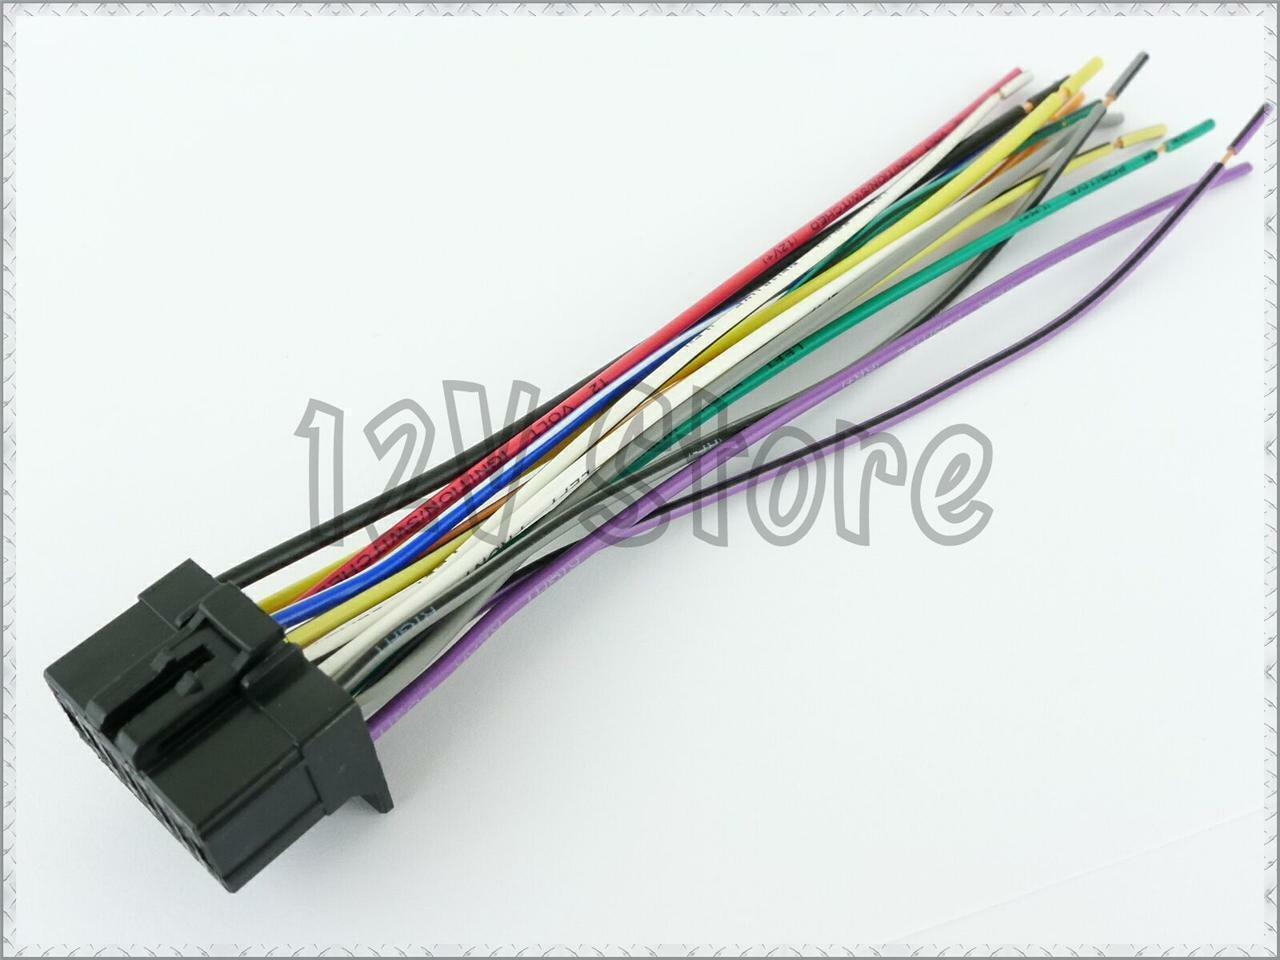 Pioneer Speaker Power Harness Deh P5000ub P7700mp Plug Connector Wire P5800mp 1 Of 1free Shipping